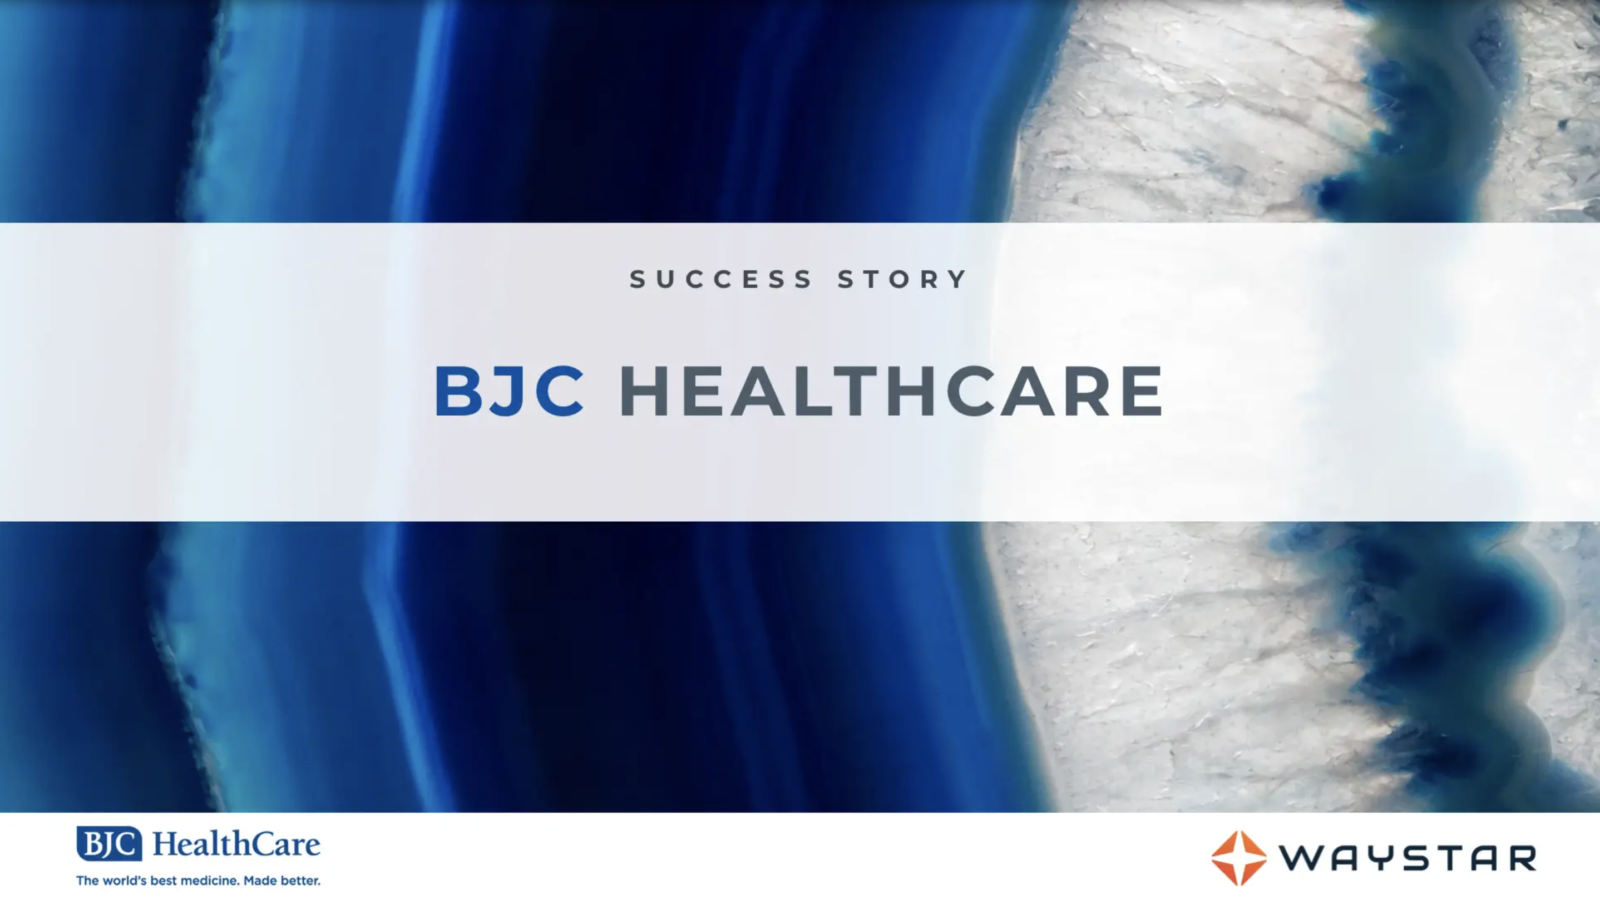 Success story: BJC Healthcare